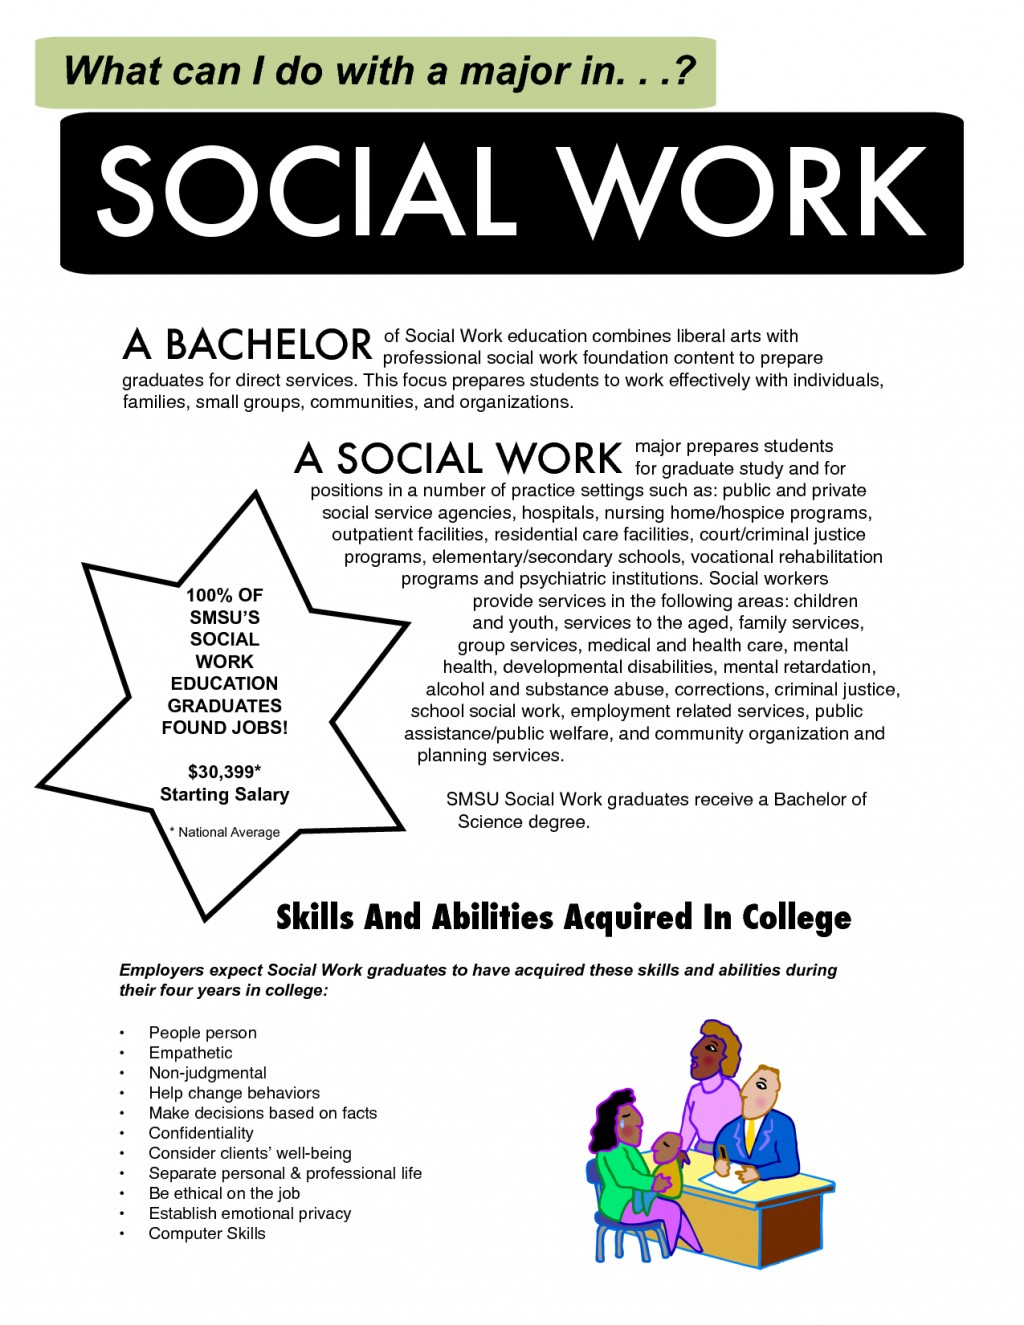 008 Essay Example Why I Want To Social Outstanding Be A Worker Study Work Do Become Became Large